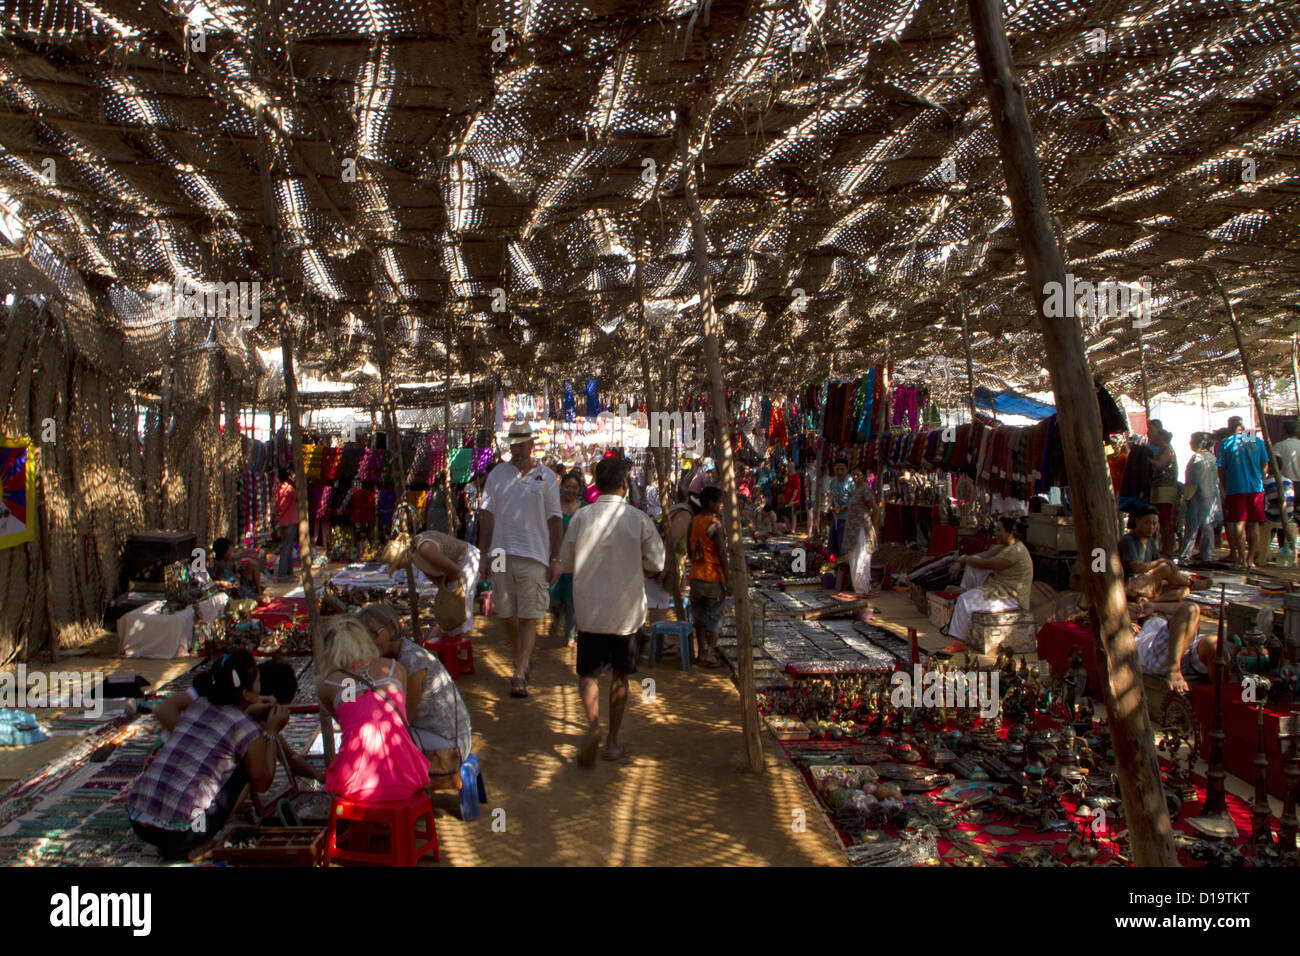 Silver and tibetan jewelry section at Anjuna Flea market. Goa India - Stock Image